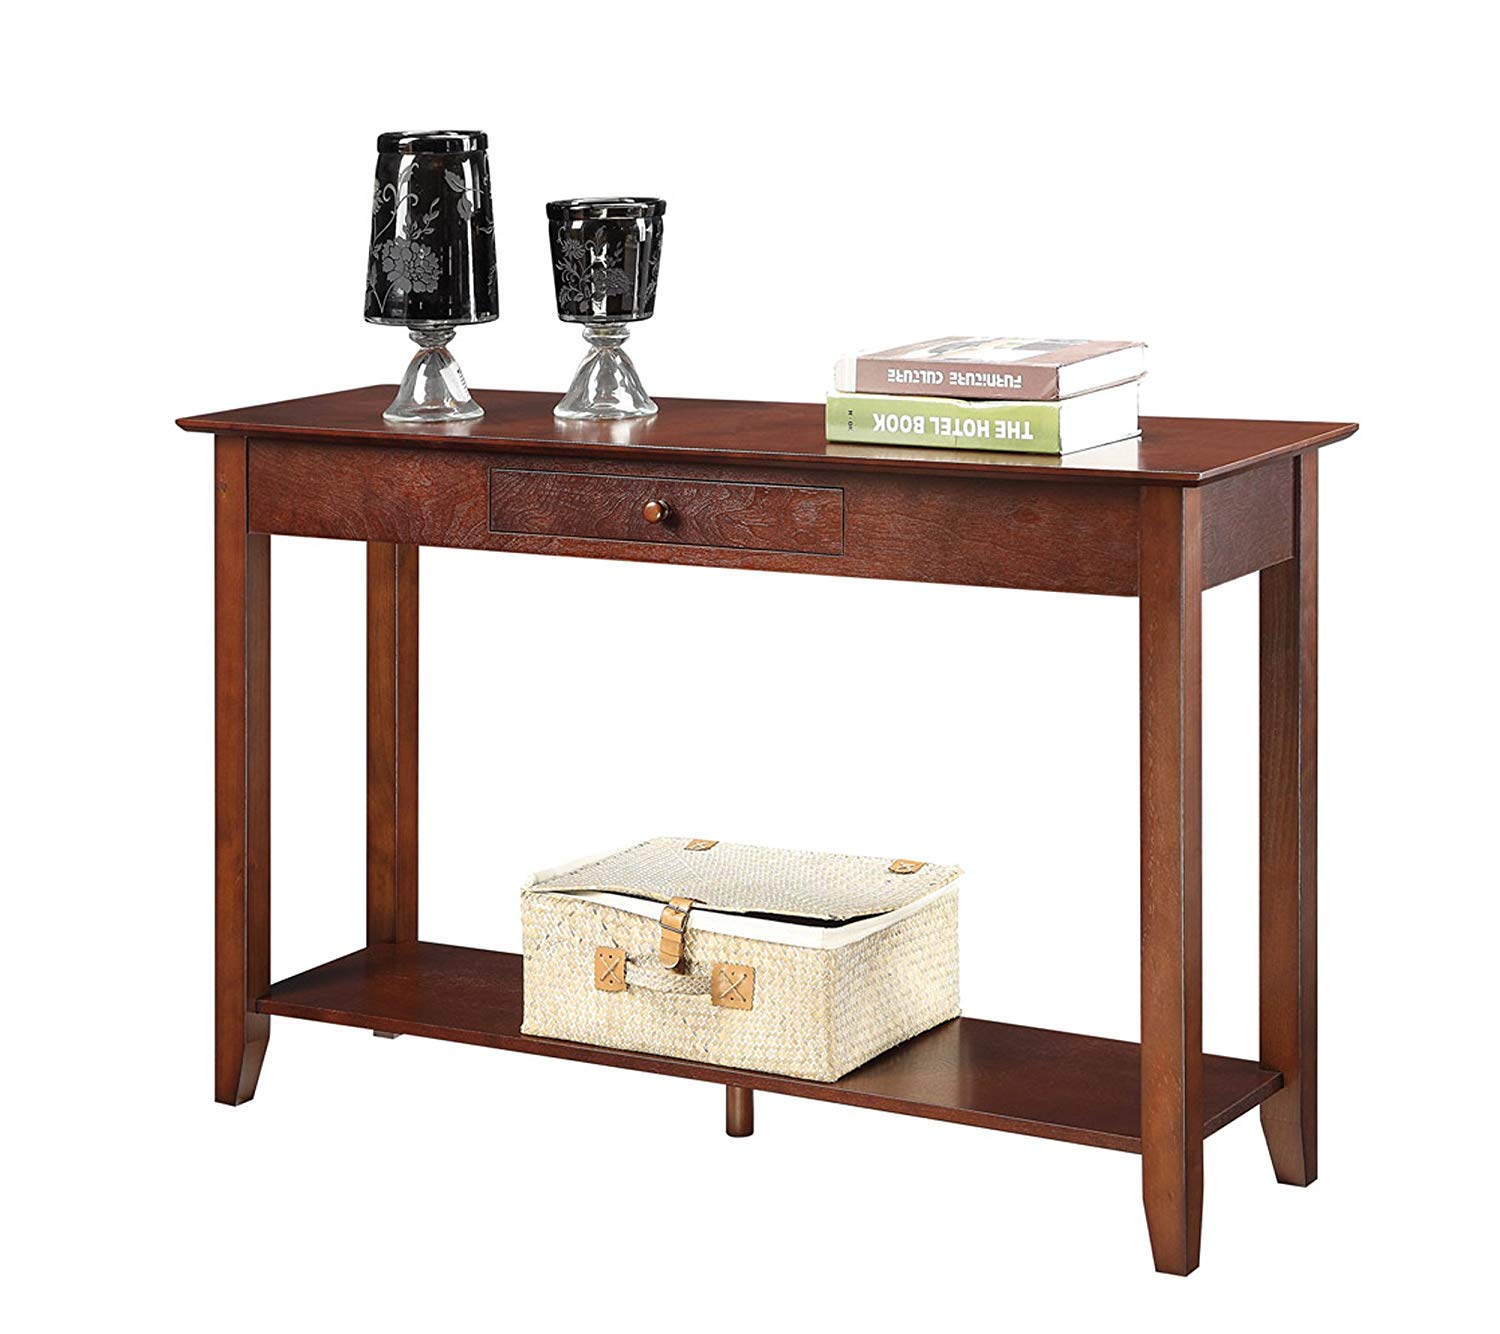 convenience concepts american heritage console table room essentials storage accent with drawer and shelf espresso kitchen dining futon mattress covers narrow bedside night stand